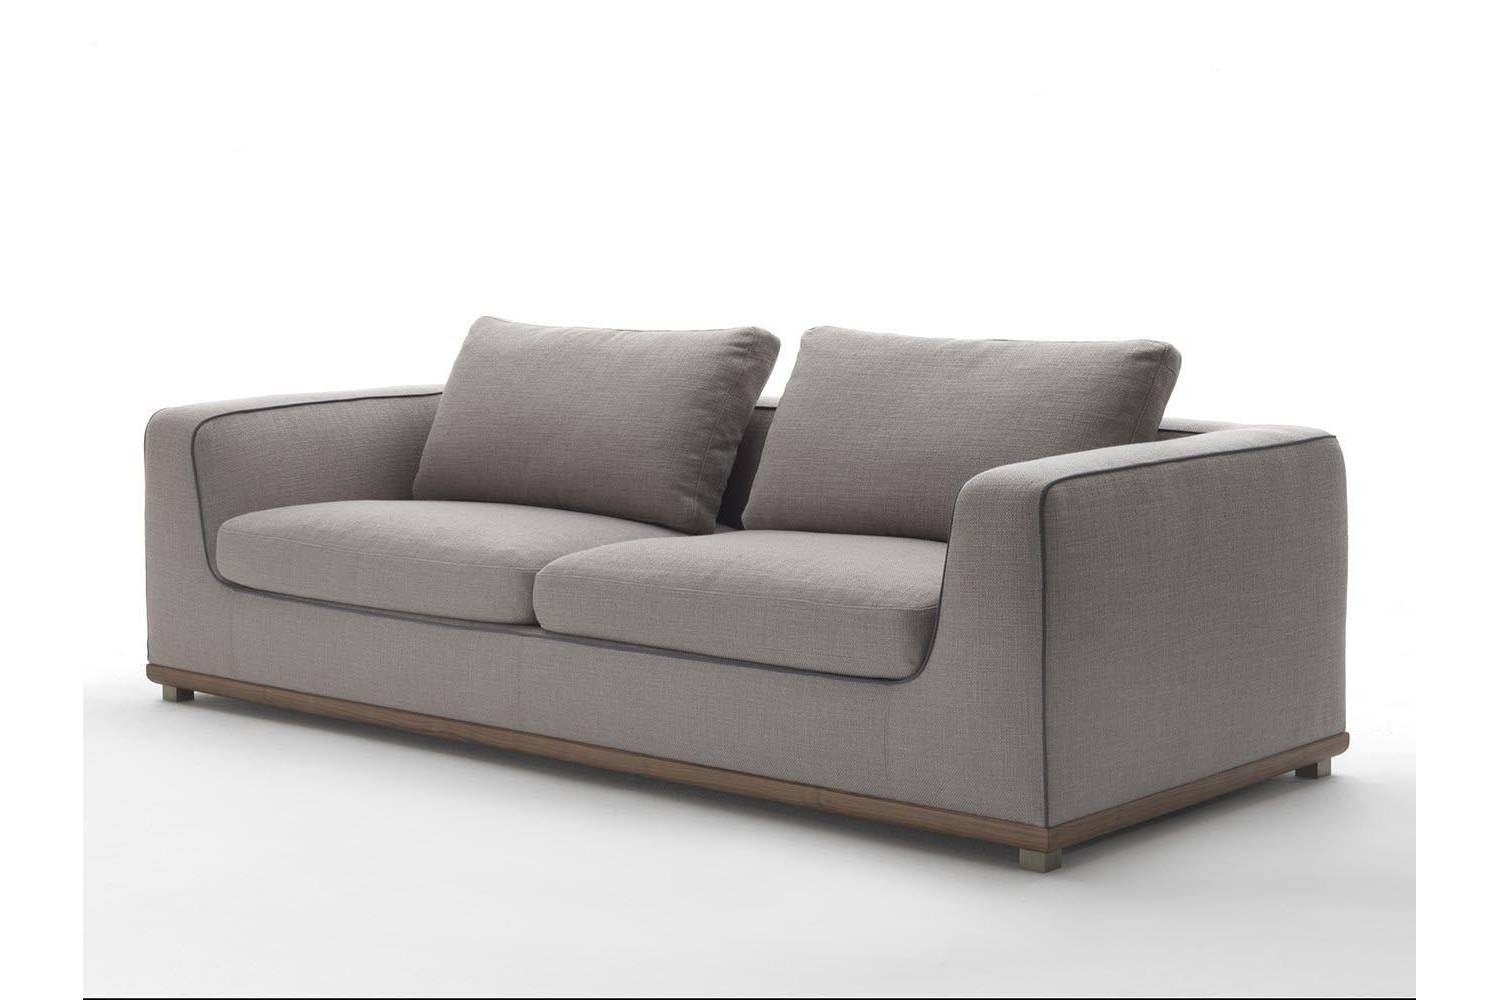 Kirk Sofa by C. Ballabio for Porada